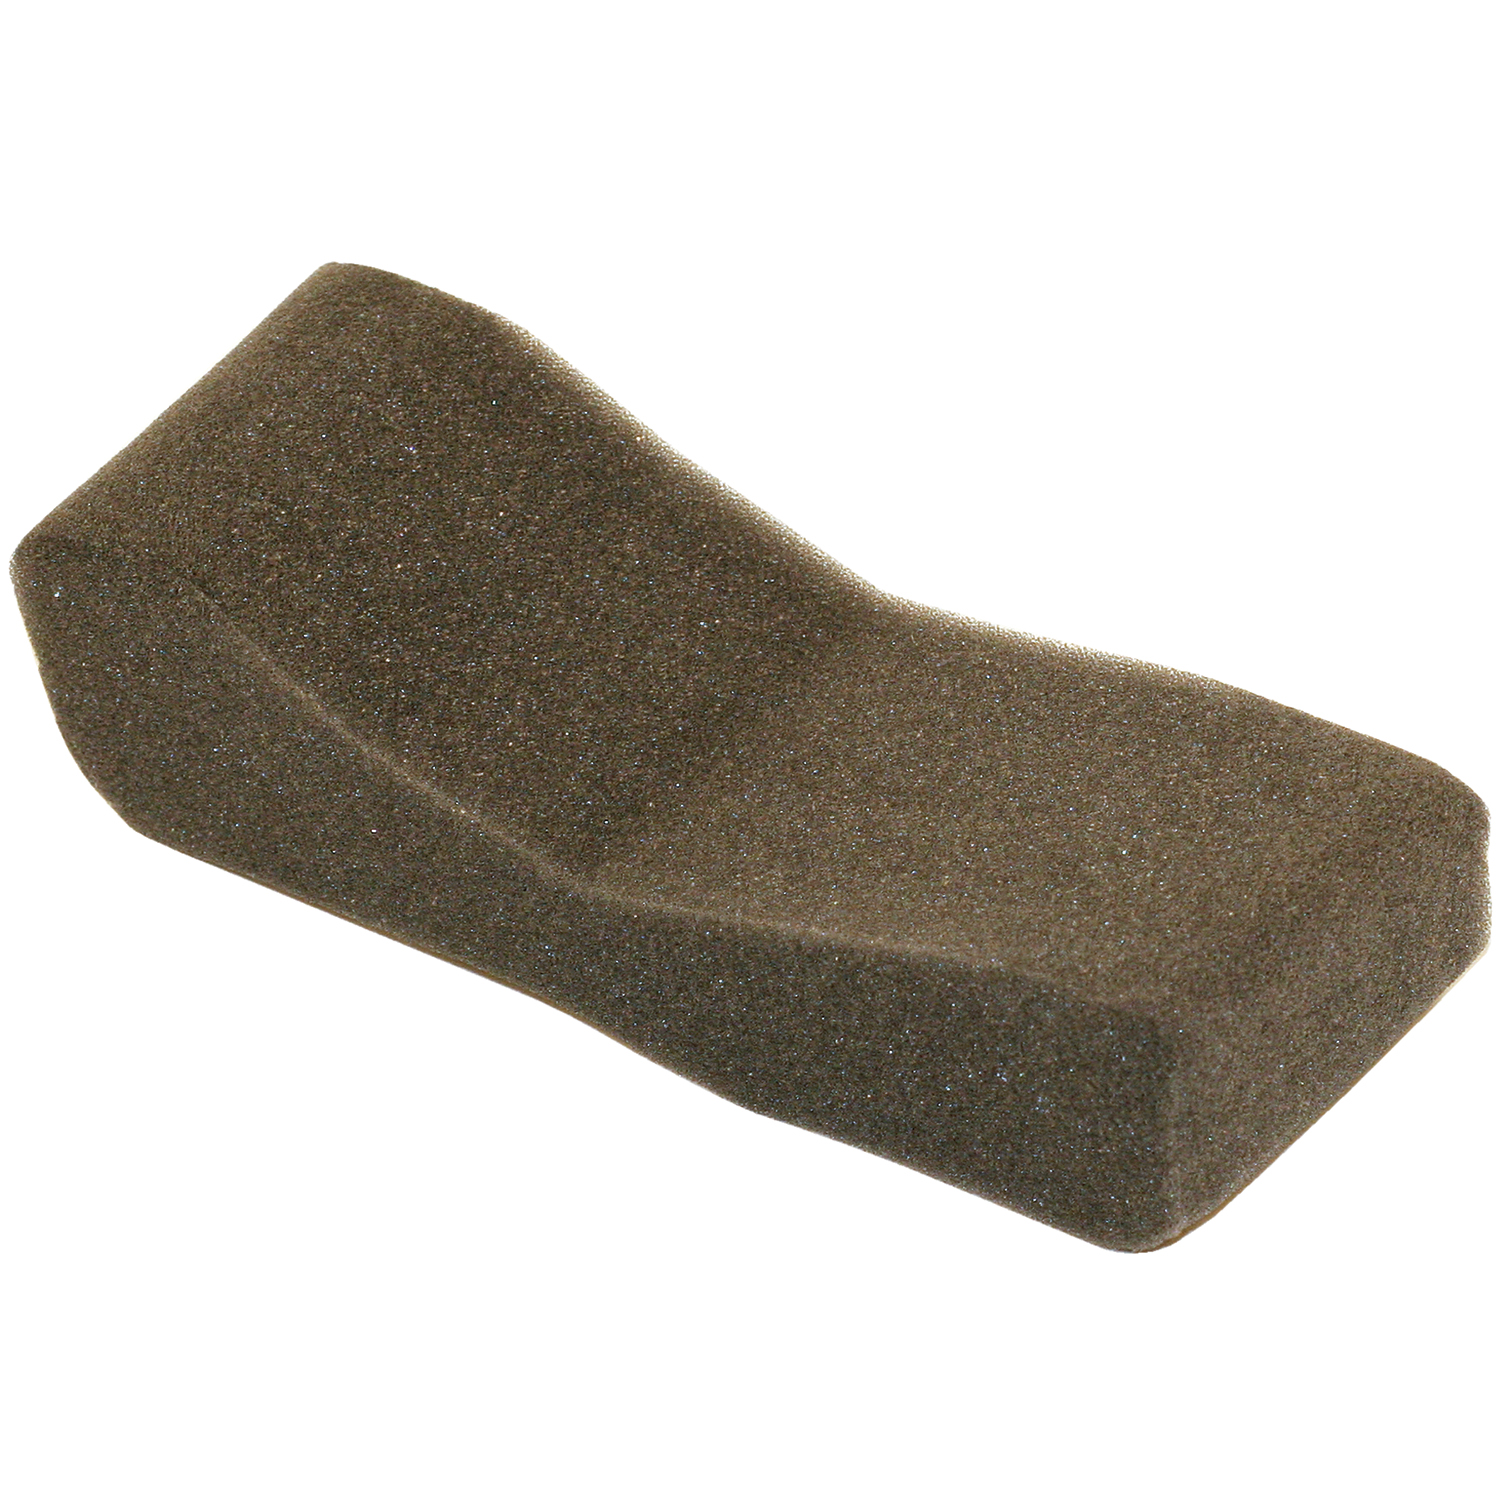 Shoulder rest,economy foam,vln,4/4-3/4